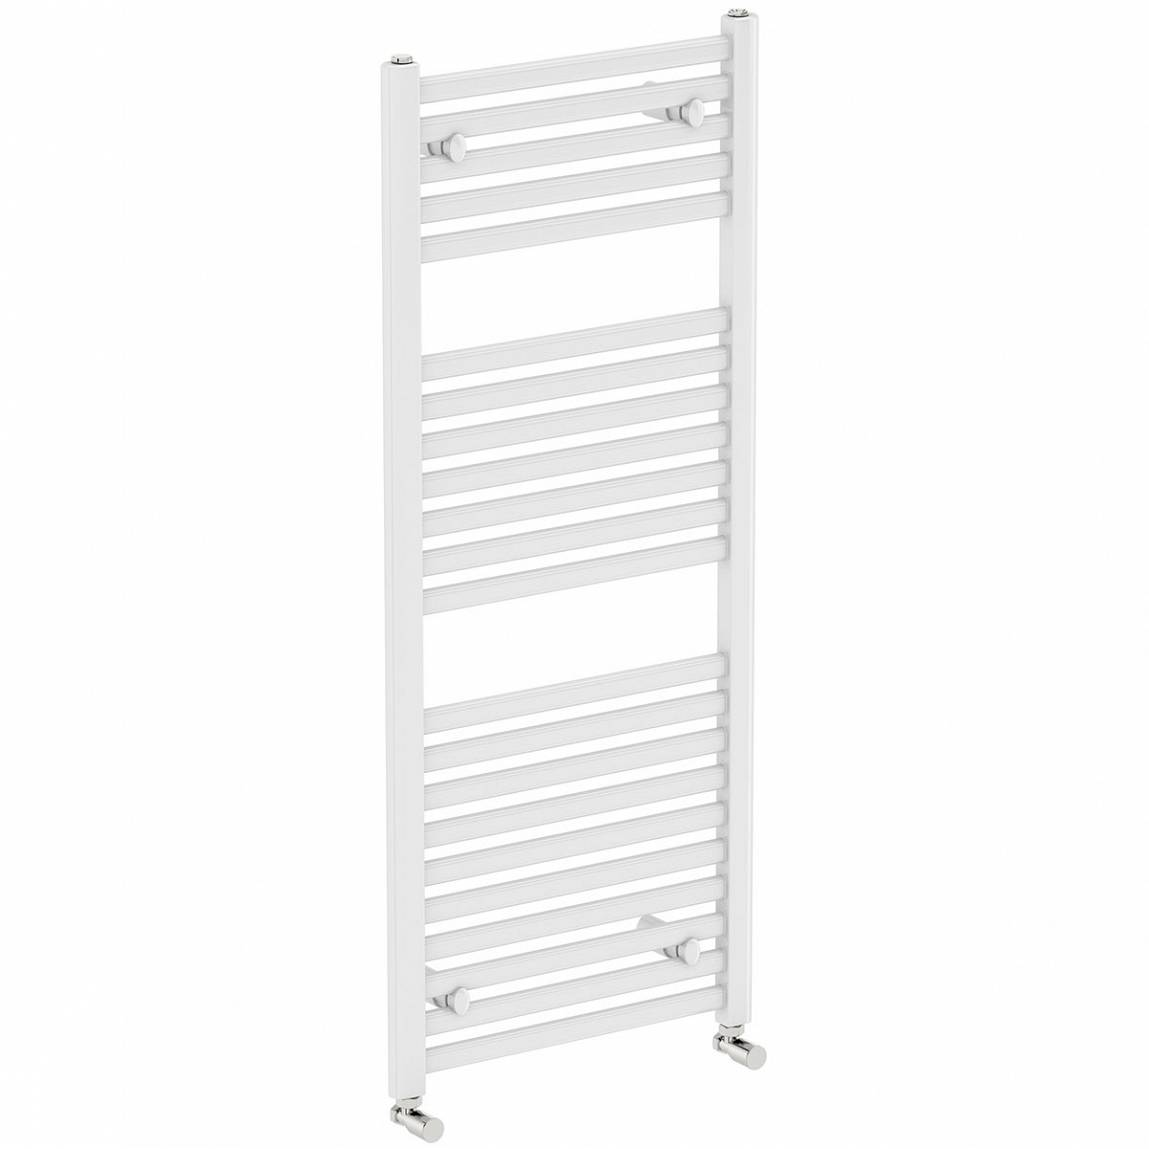 Image of White Heated Towel Rail 1200 x 600 PLUS Valves